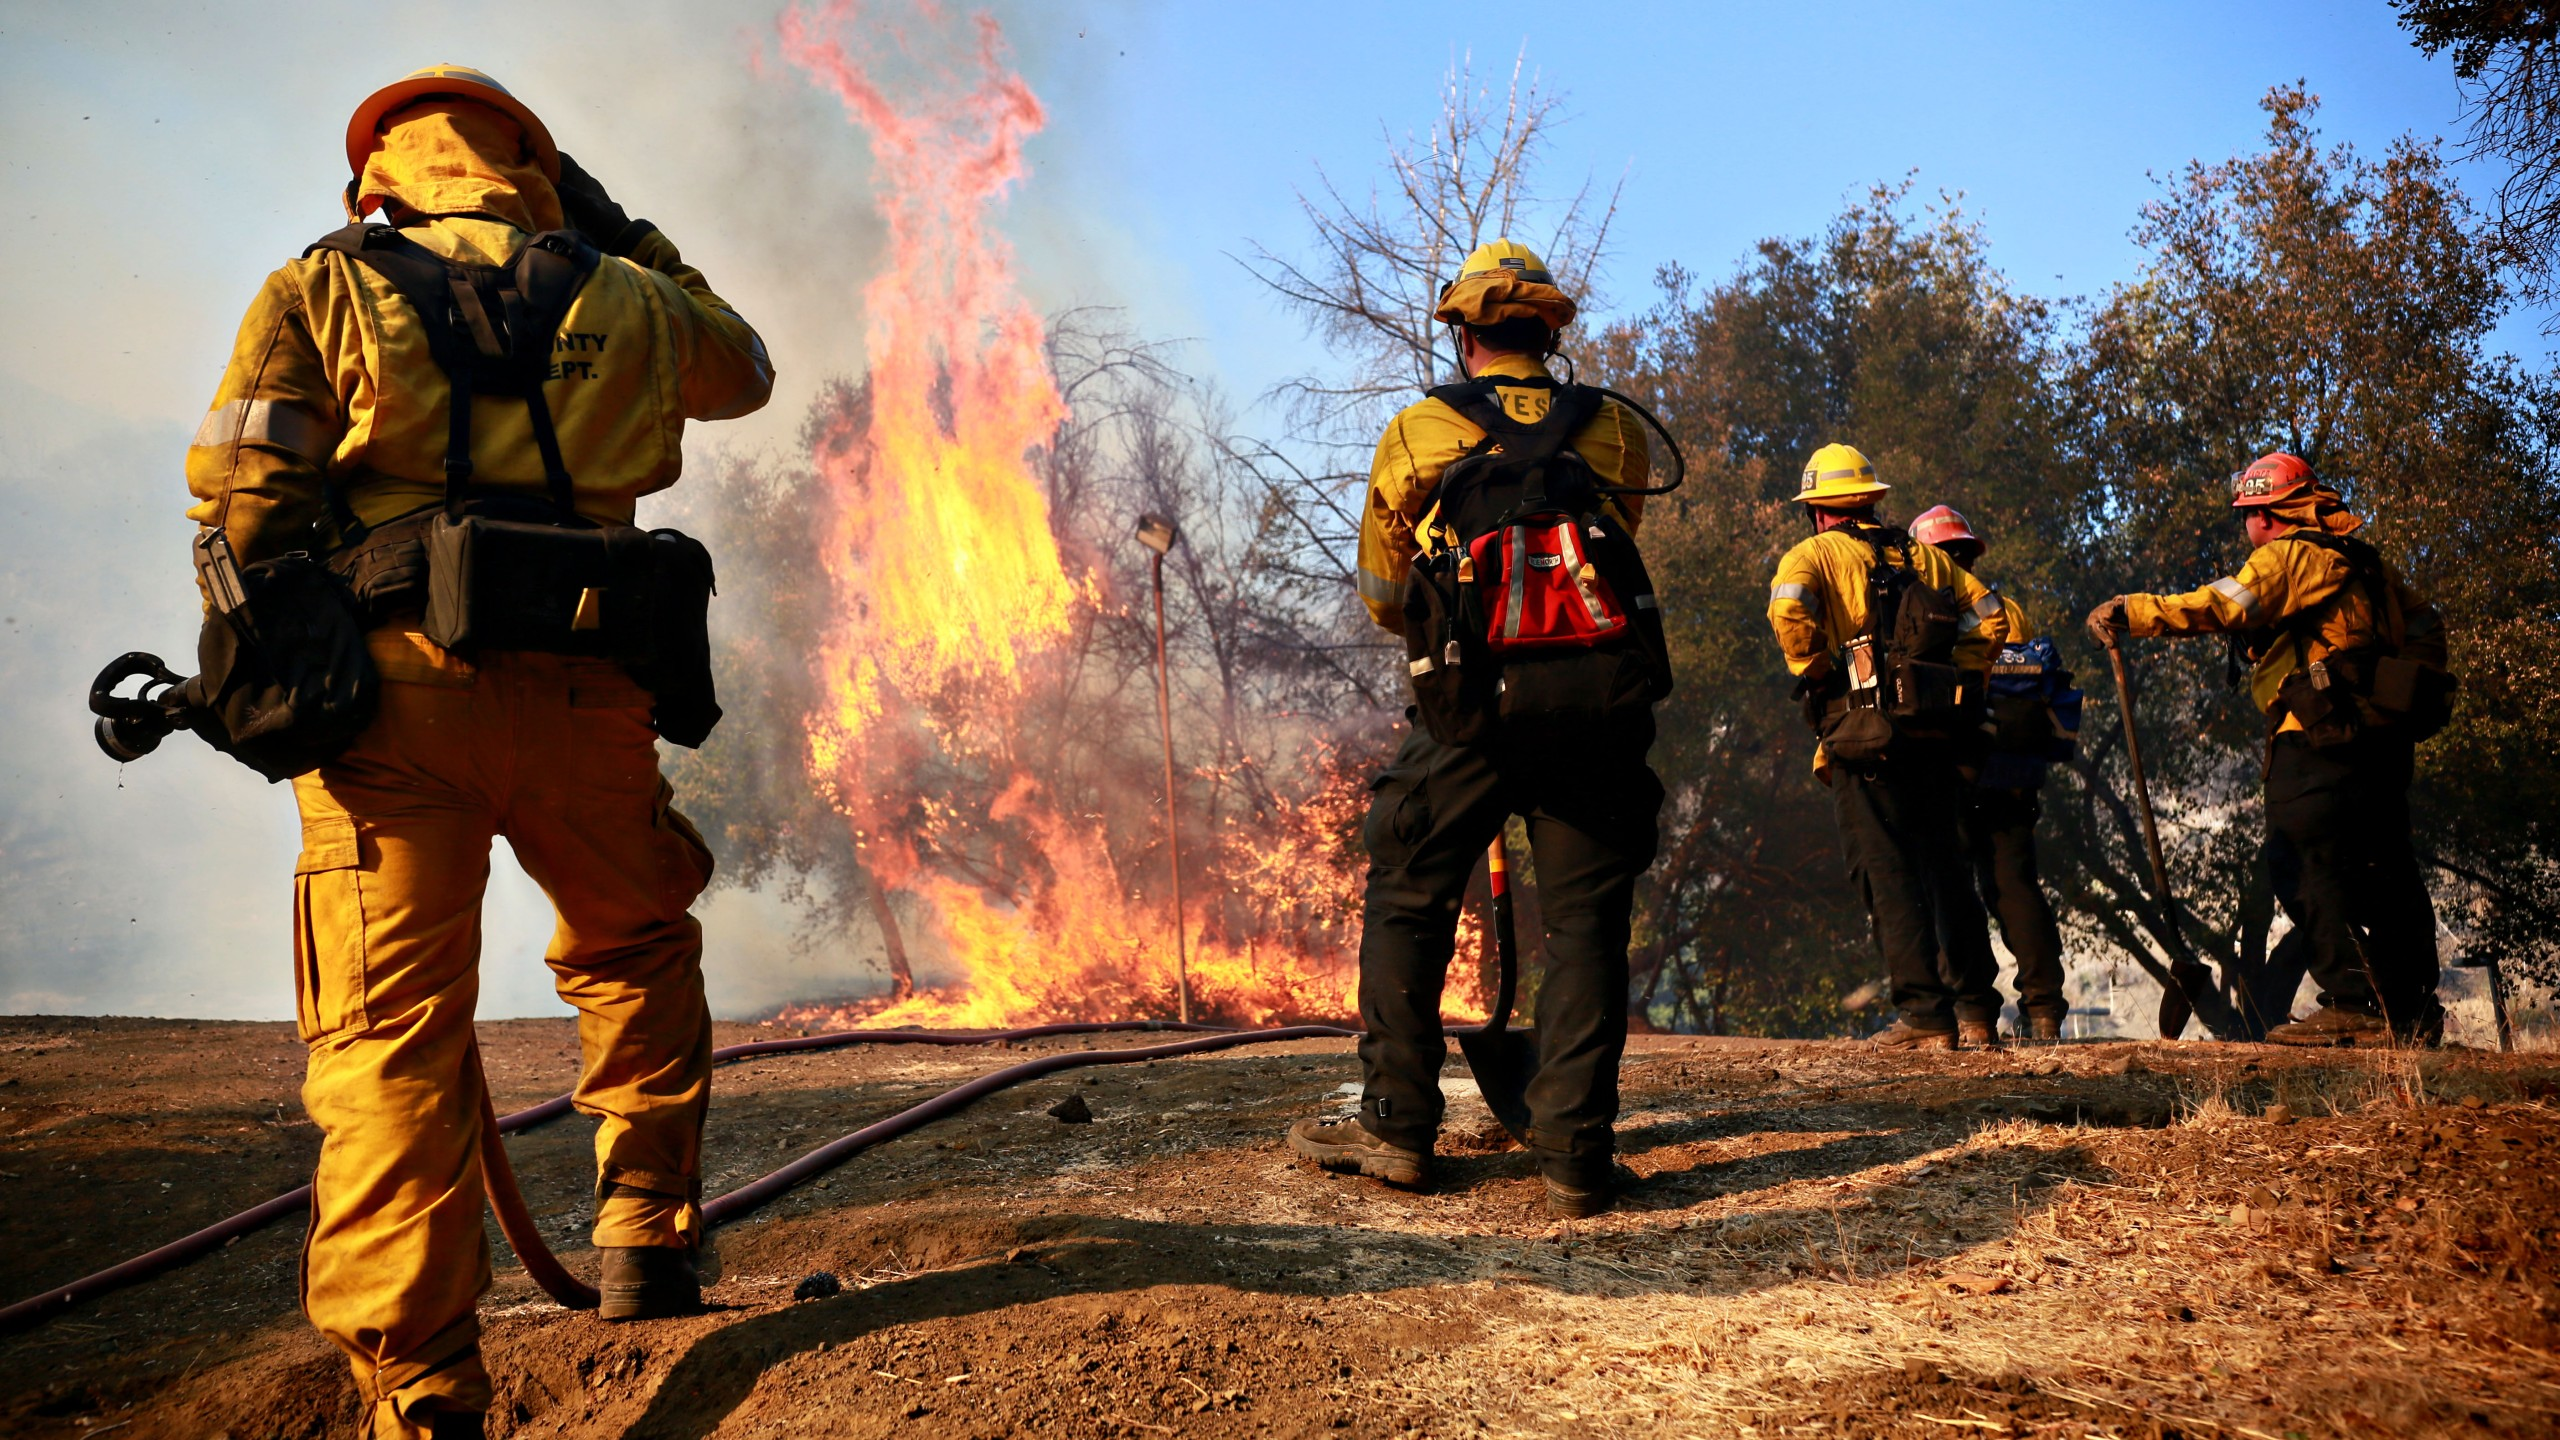 Firefighters battle a blaze at the Salvation Army Camp on November 10, 2018 in Malibu, California. (Credit: Sandy Huffaker/Getty Images)